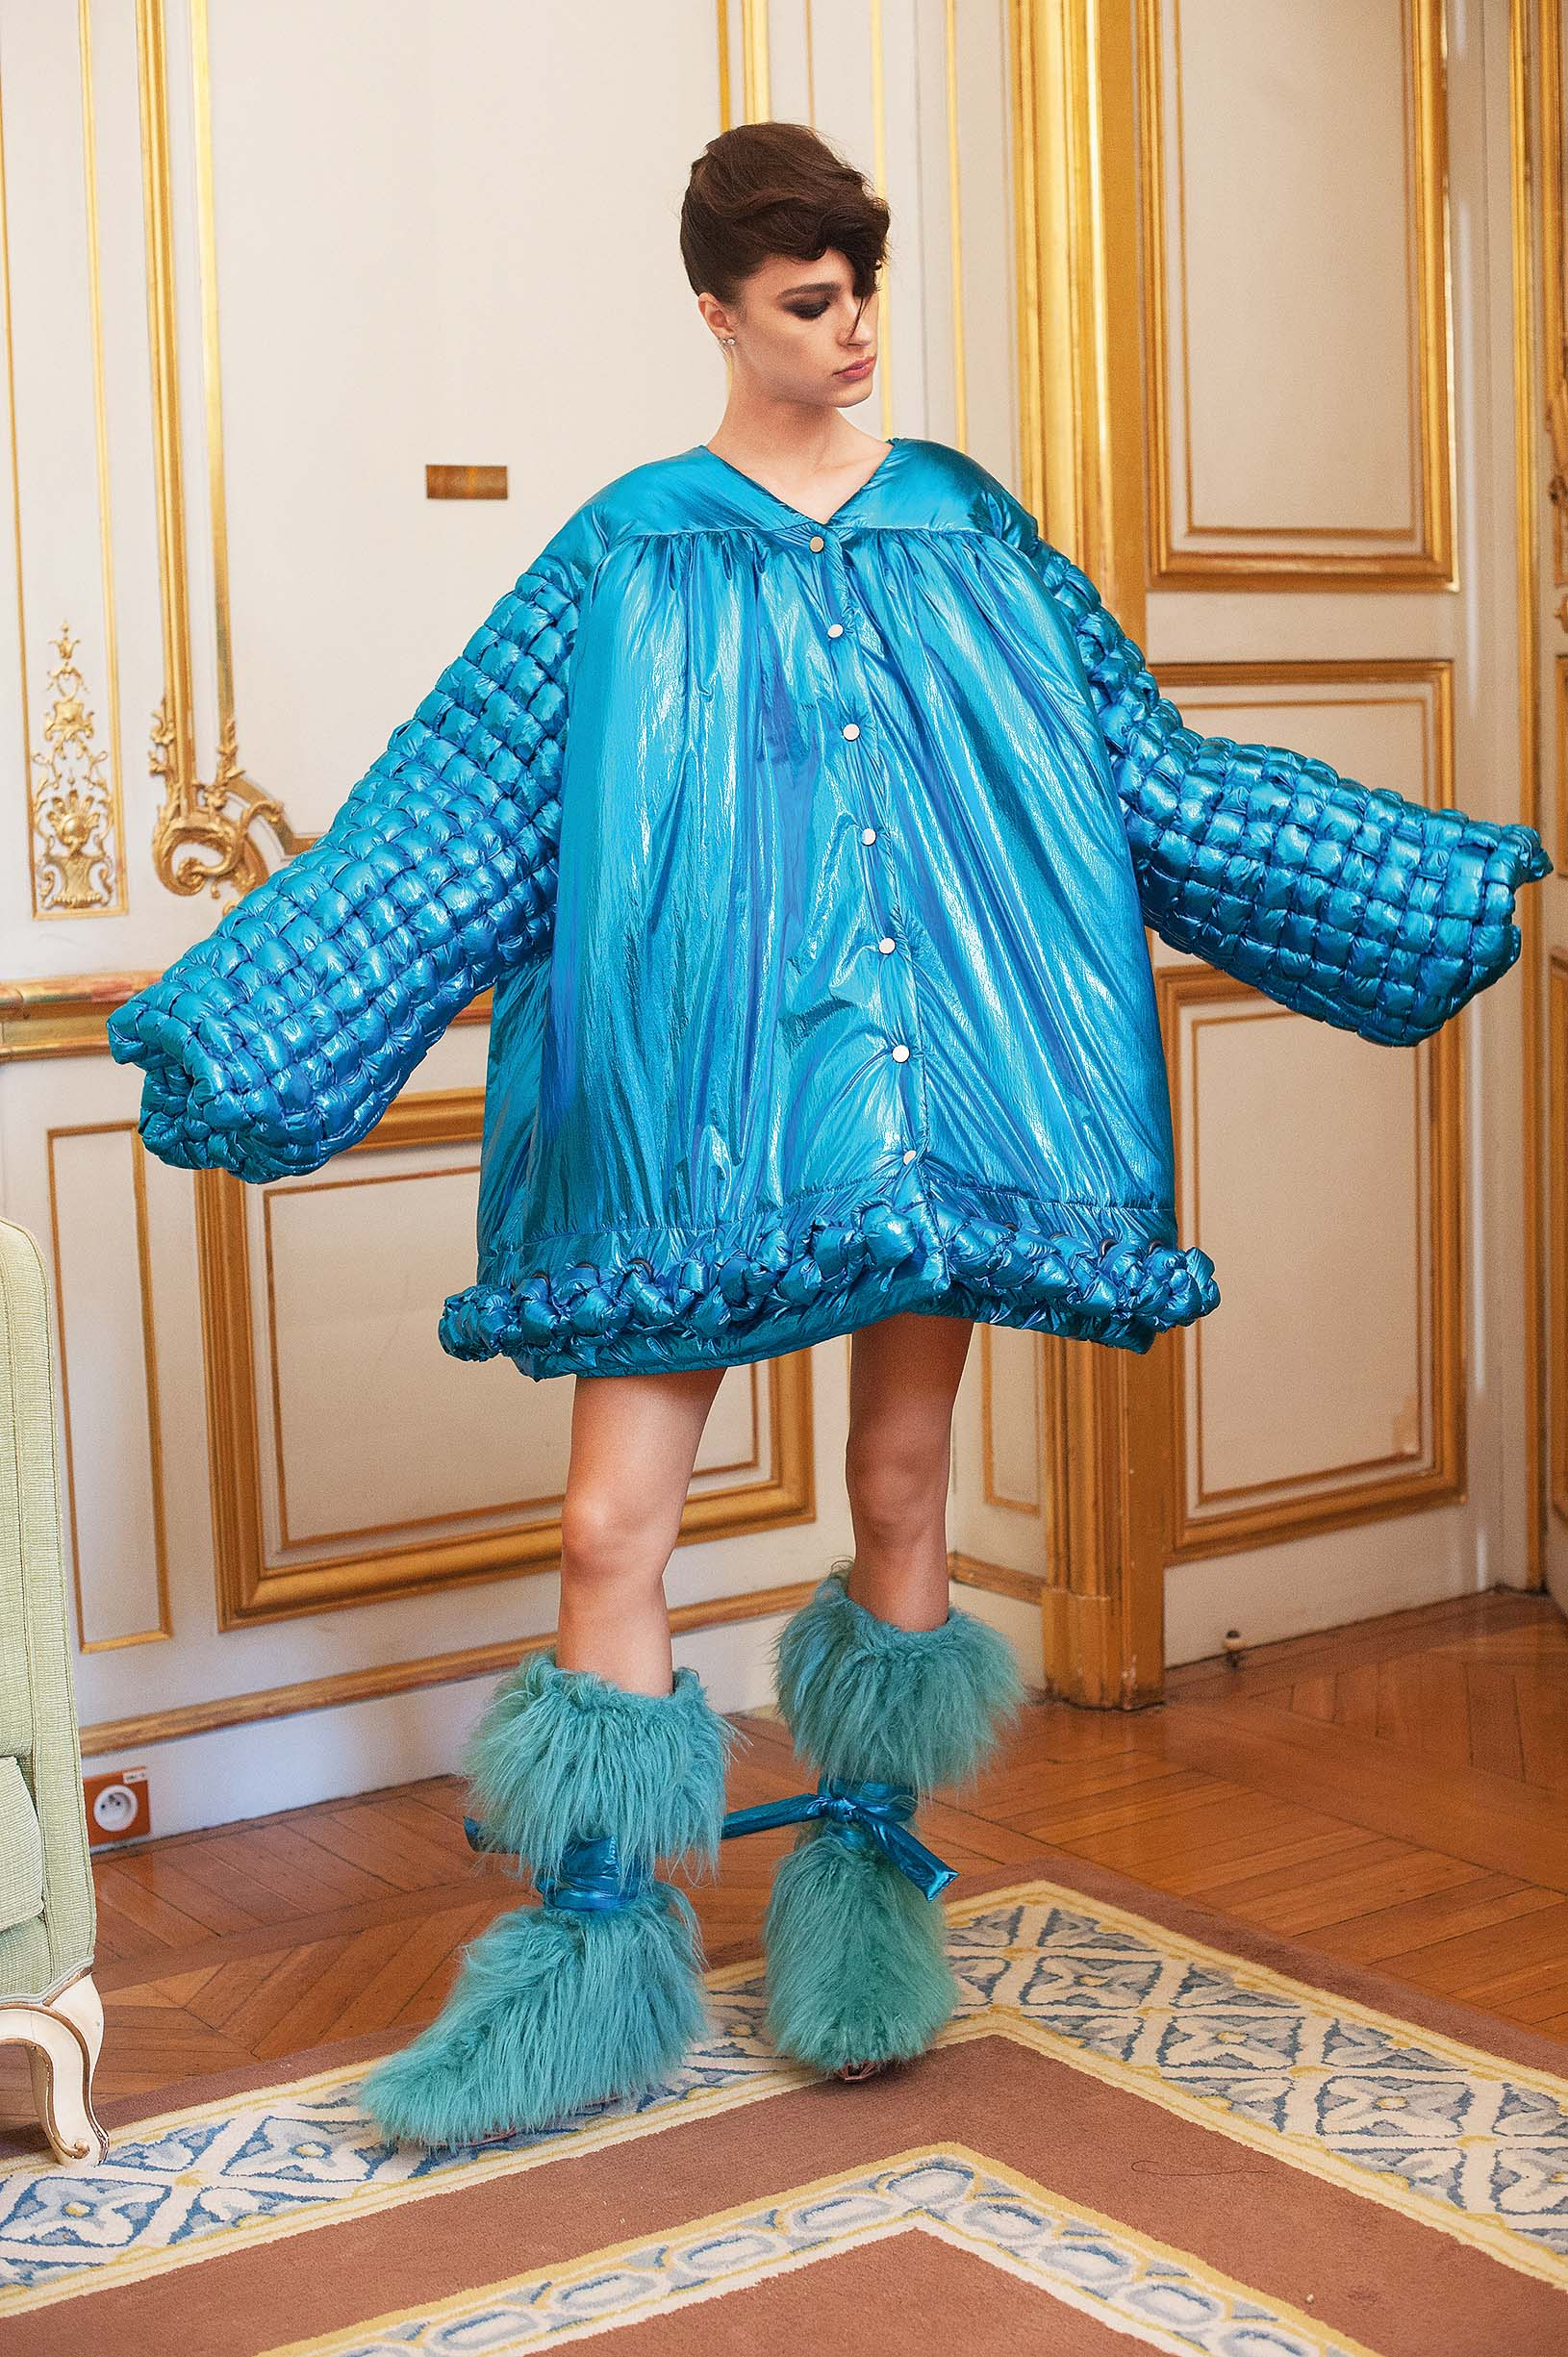 PARIS, FRANCE - JULY 02: A model poses backstage prior the Antonio Ortega Haute Couture Fall/Winter 2019 2020 show as part of Paris Fashion Week on July 02, 2019 in Paris, France. (Photo by Kay-Paris Fernandes/Getty Images)